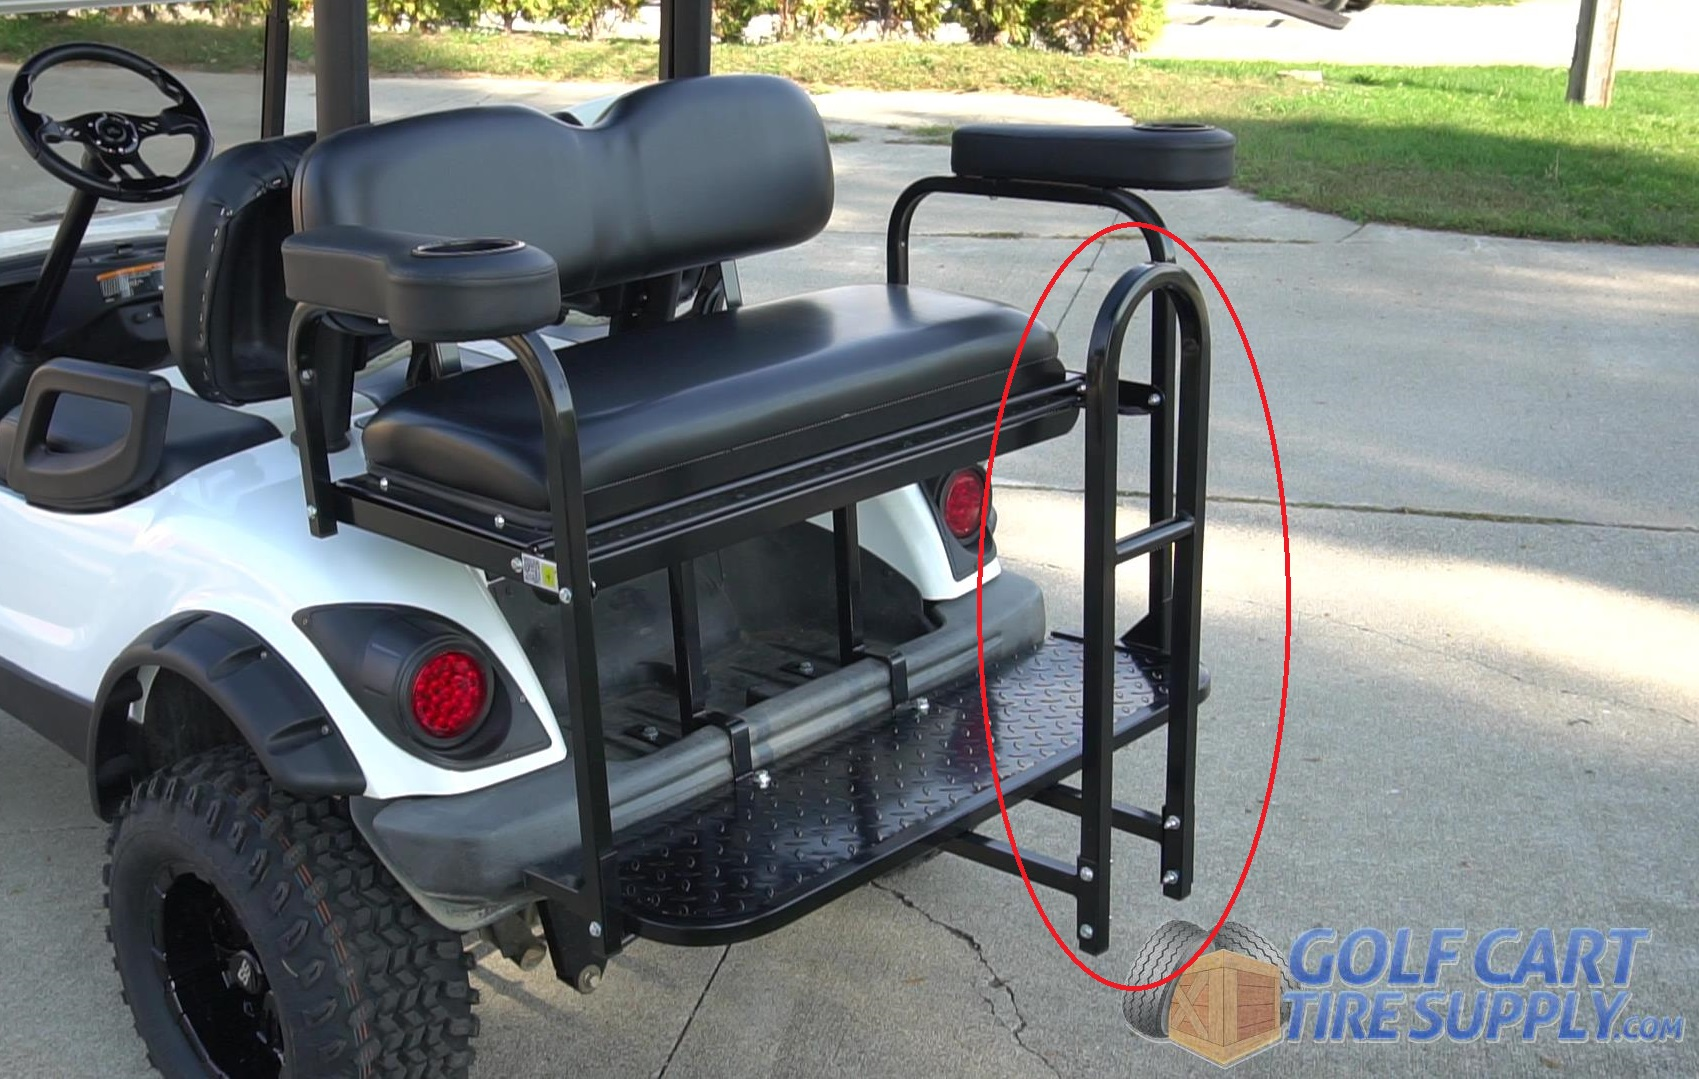 golf-cart-grab-bar-rear-seat-03.jpg